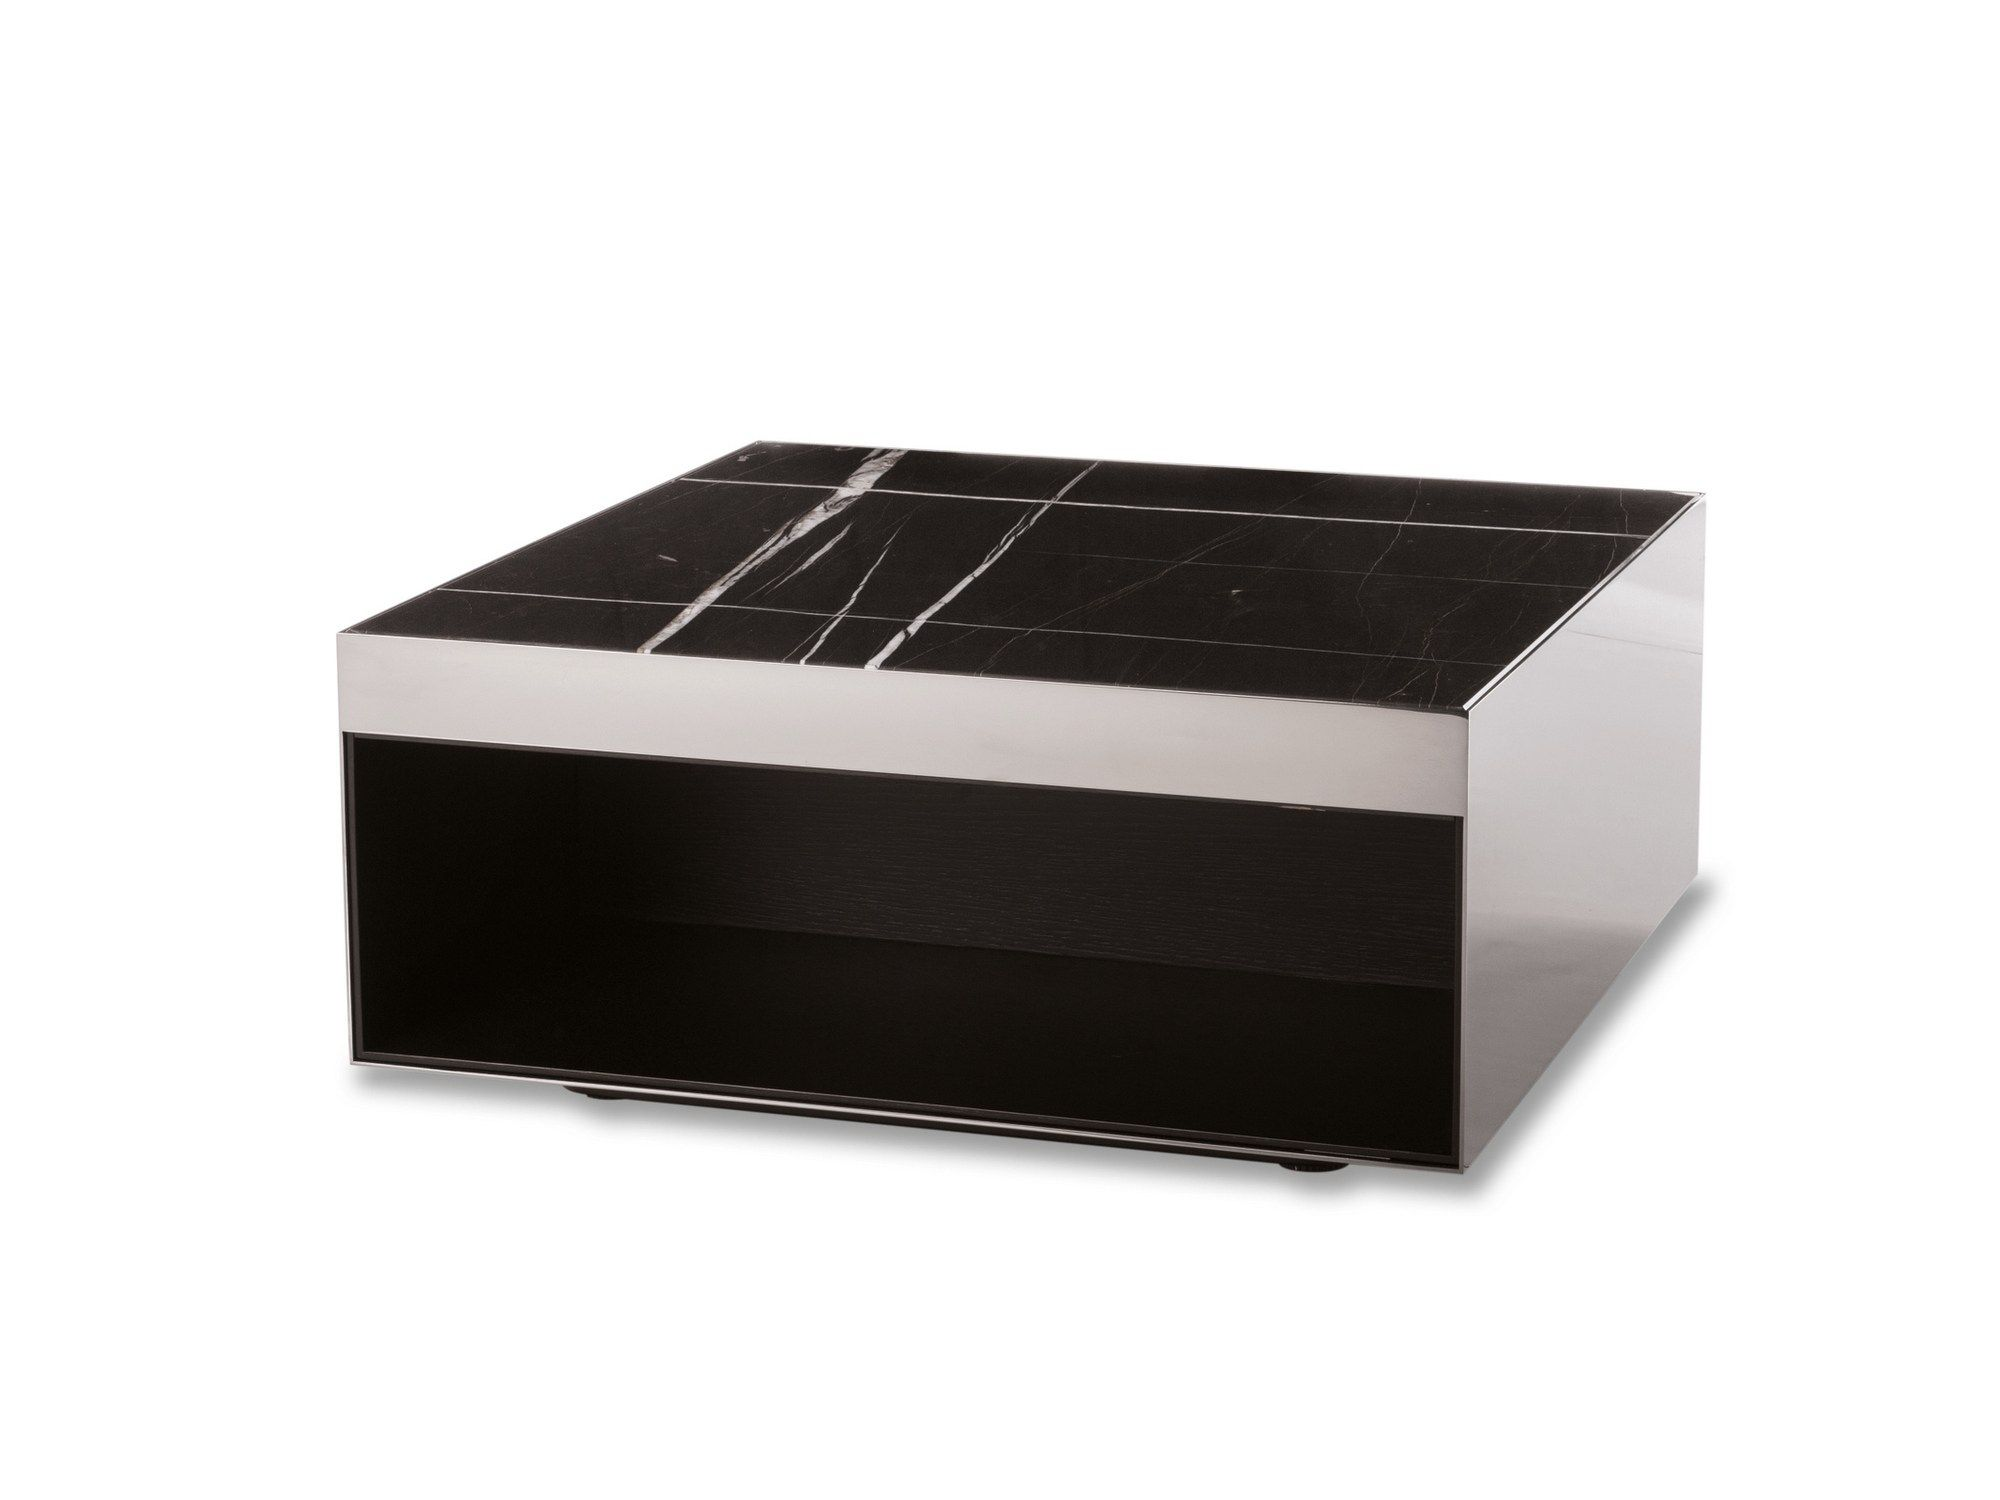 Square Marble Coffee Table With Integrated Magazine Rack Elliot Collection By Minotti Design